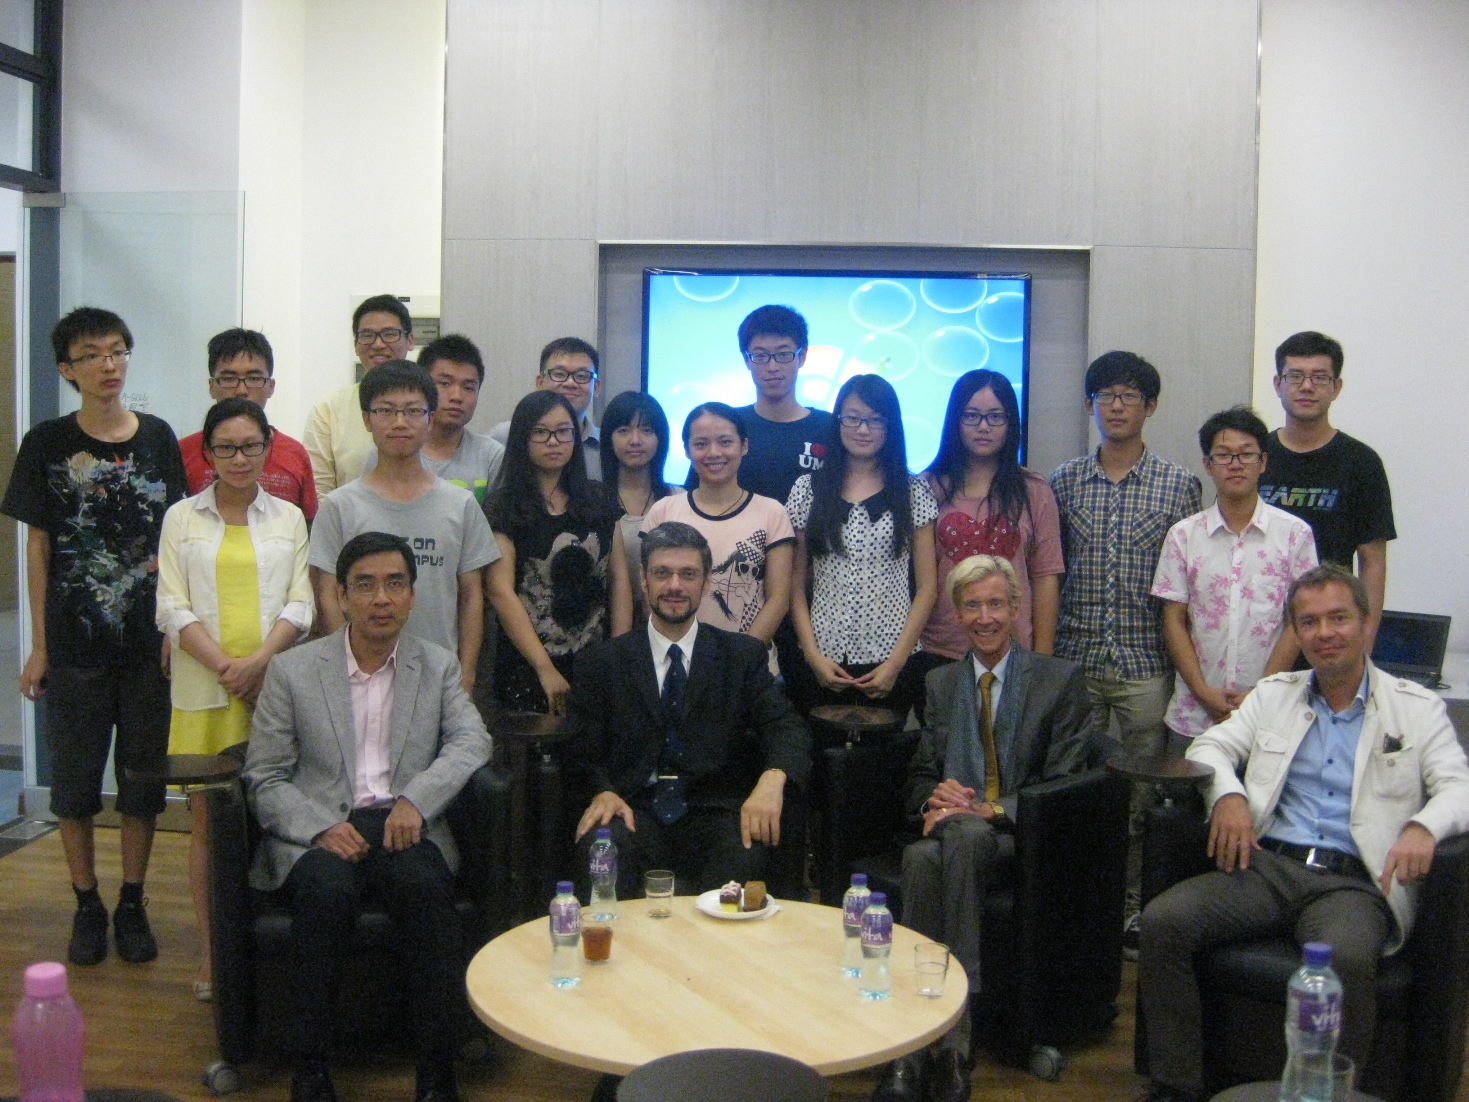 Mr. Gerhard Alois Maynhardt from the Austrian Consul General (2nd from left) and Prof. Kevin Thompson, master of the Moon Chun Memorial College (3rd from left), with  students